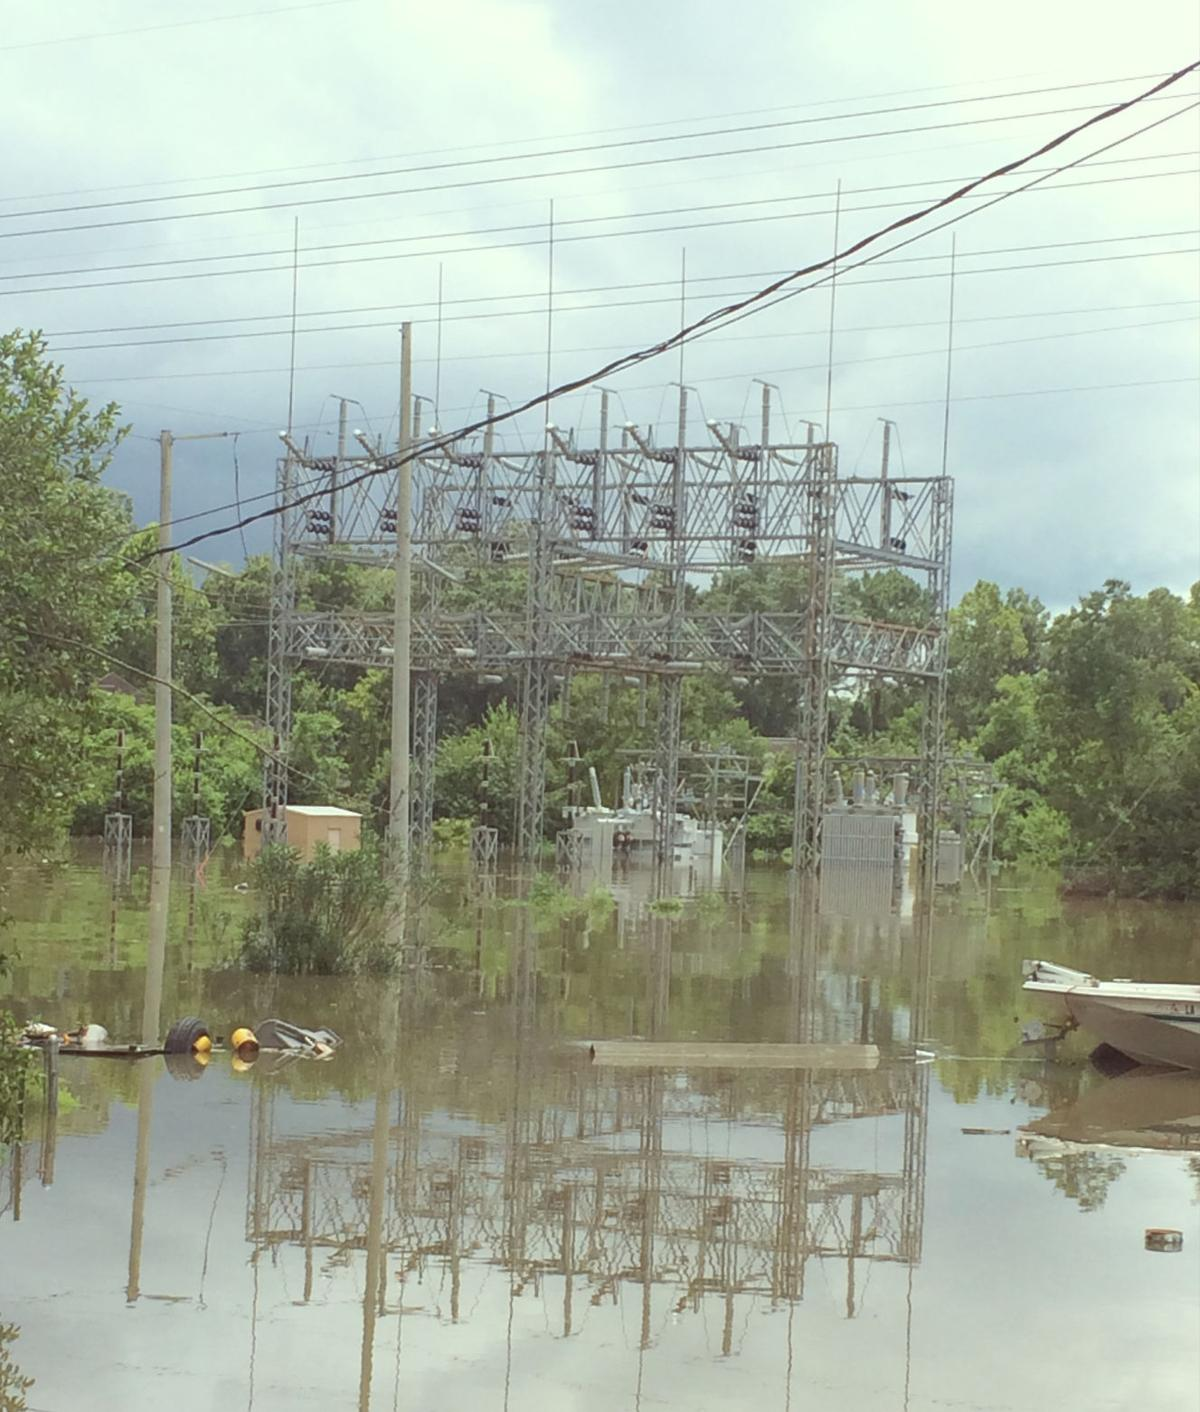 29,554 homes and businesses still without power